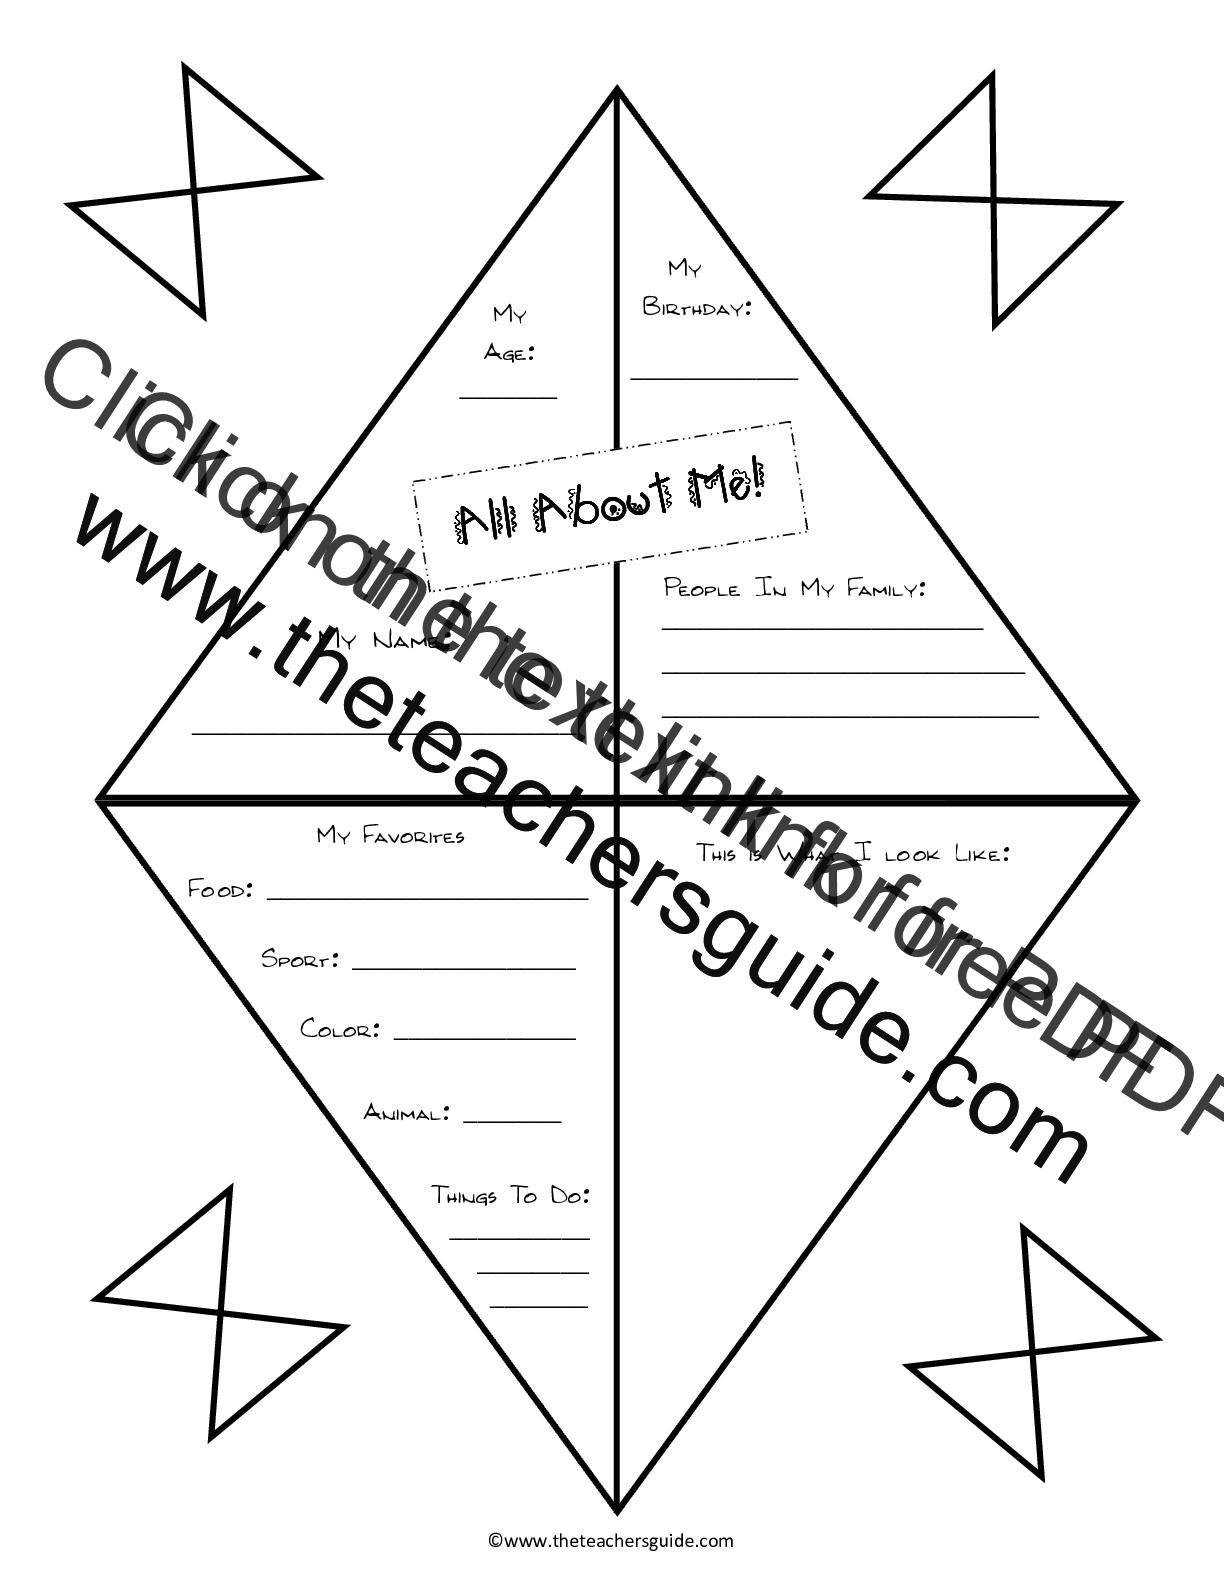 Free Printable All About Me Worksheet For Middle School